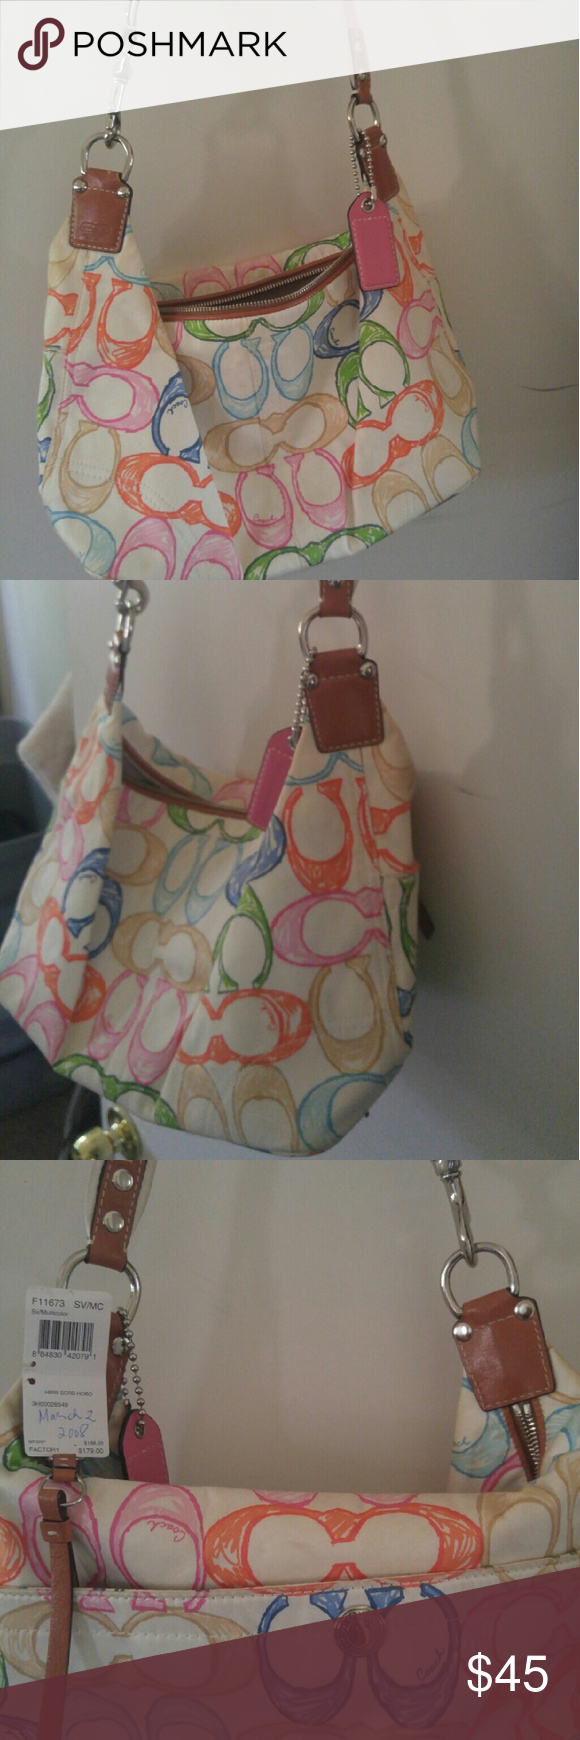 Coach Slouchy shoulder bag Coach bag- Summery pastel colored C's, tan leather straps with pink cloth strip, good condition but slightly faded fabric. Bought in 2008, but only worn a handful of times-was packed away in storage for years (hence slight fading). Original tag removed, but included. Great for spring and summer! Casual yet fun! Medium-sized bag. Coach Bags Shoulder Bags